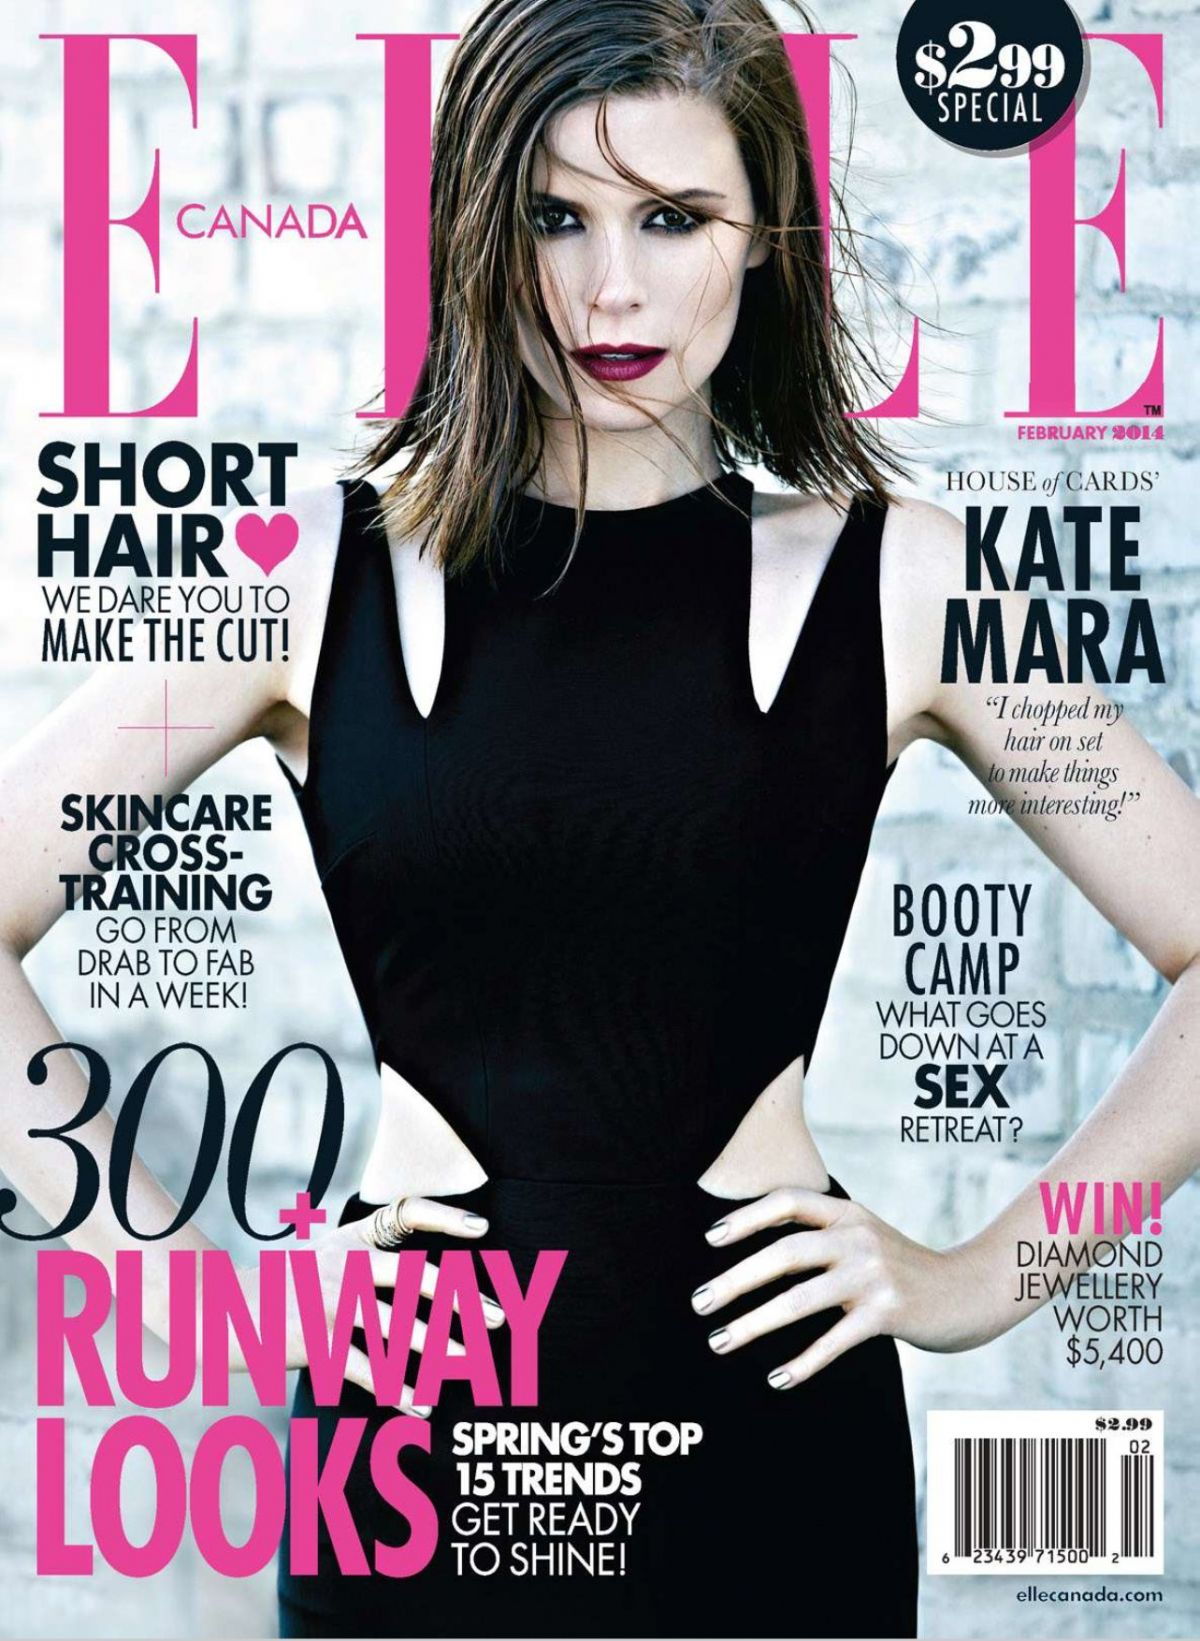 Elle Magazine France February March: KATE MARA In Elle Magazine, Canada February 2014 Issue